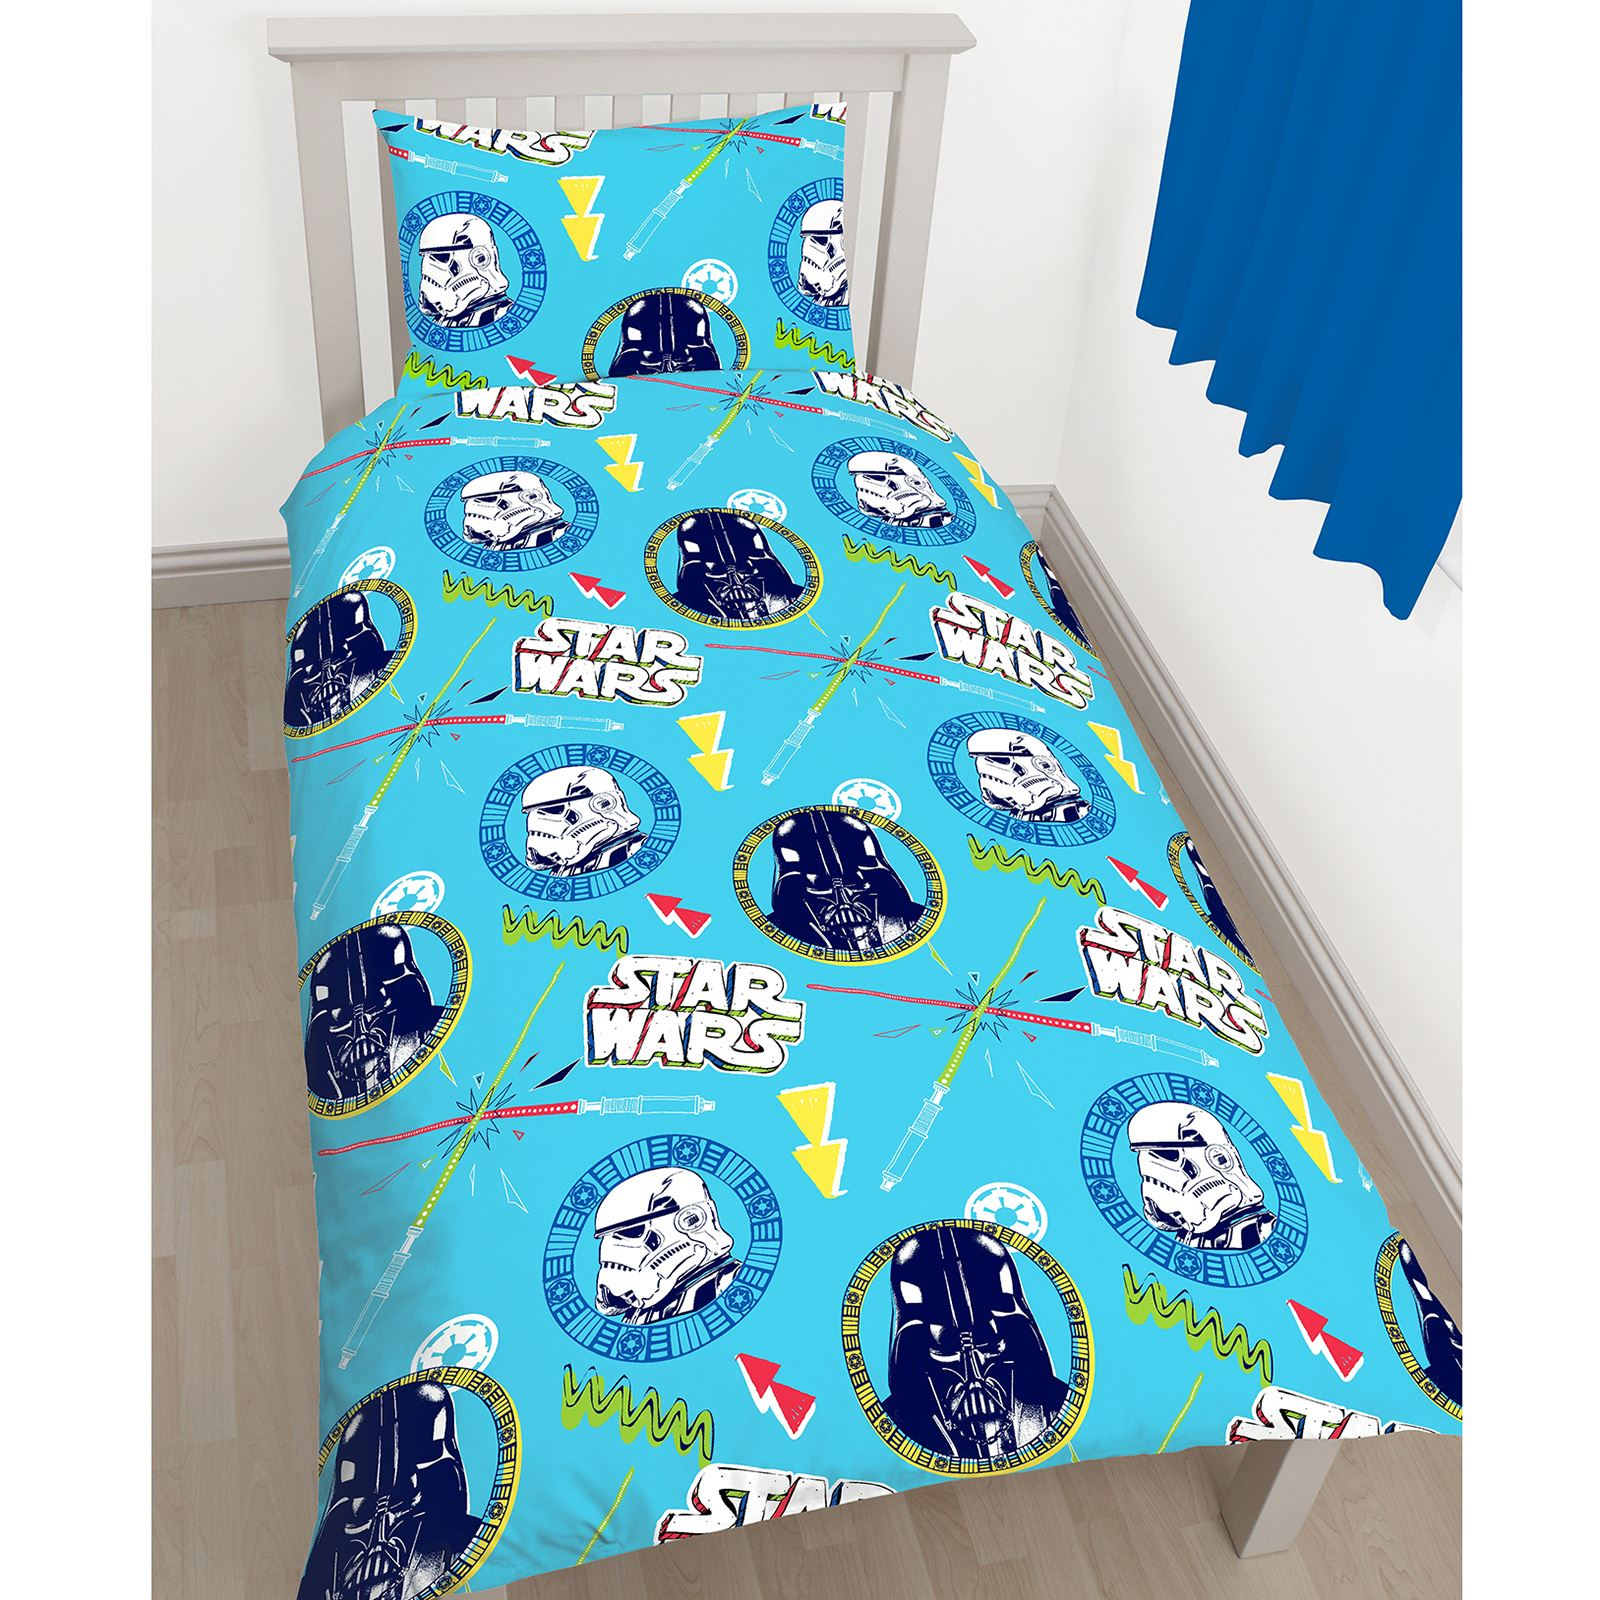 star wars klassisch doodle einzelbettbezug set kinder schlafzimmer bettw sche. Black Bedroom Furniture Sets. Home Design Ideas